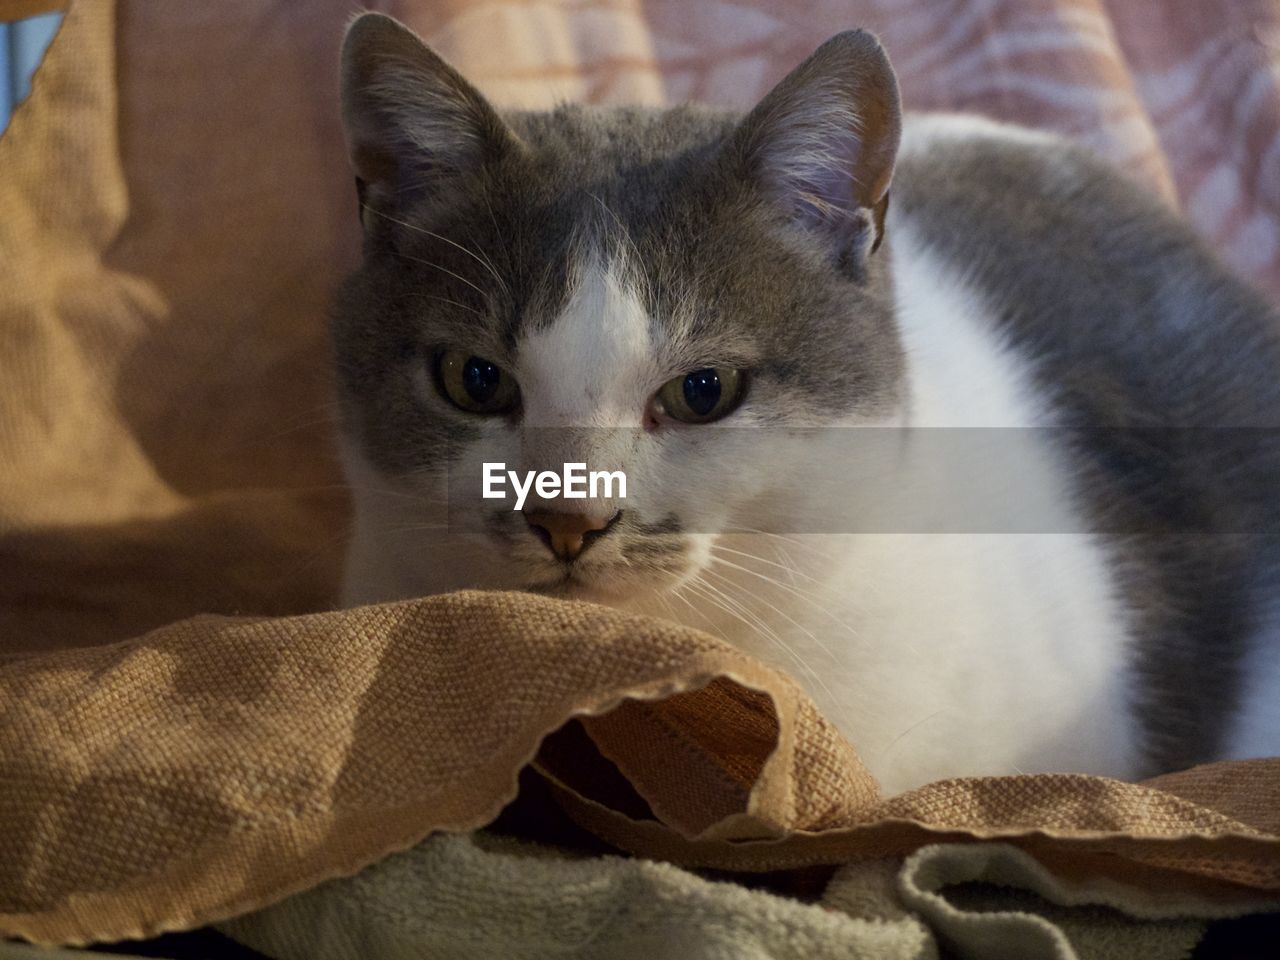 feline, pets, domestic cat, cat, domestic, animal themes, mammal, one animal, domestic animals, animal, vertebrate, indoors, whisker, close-up, no people, relaxation, textile, looking at camera, focus on foreground, portrait, animal head